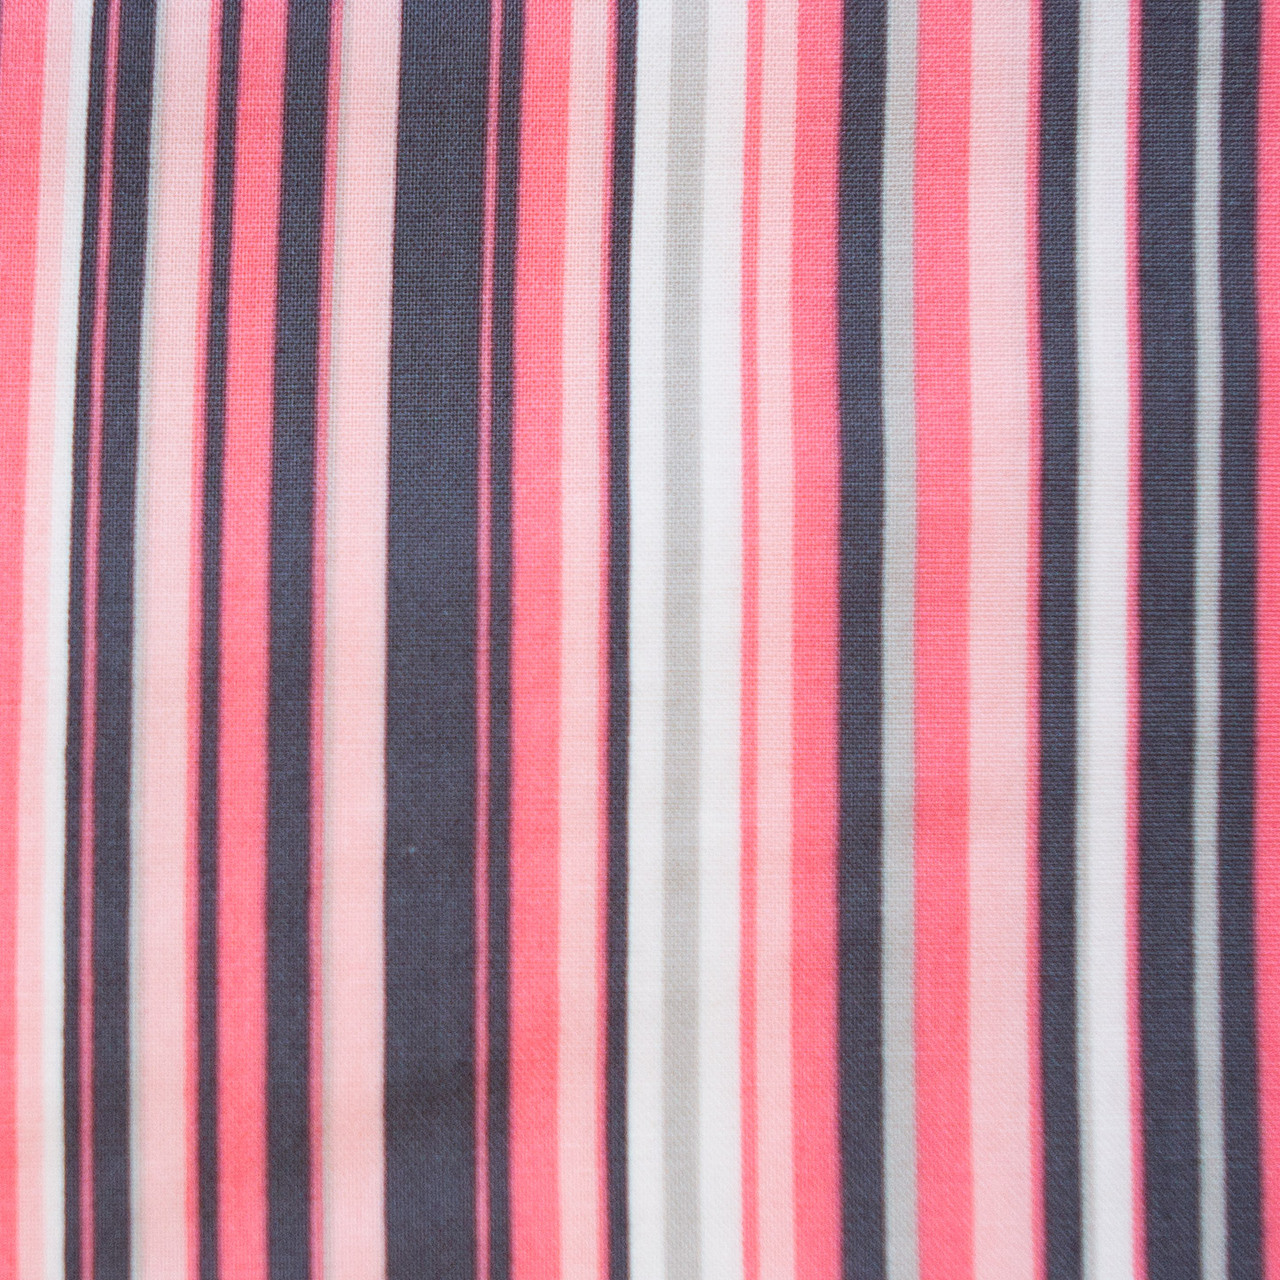 Coral Pinstripes print